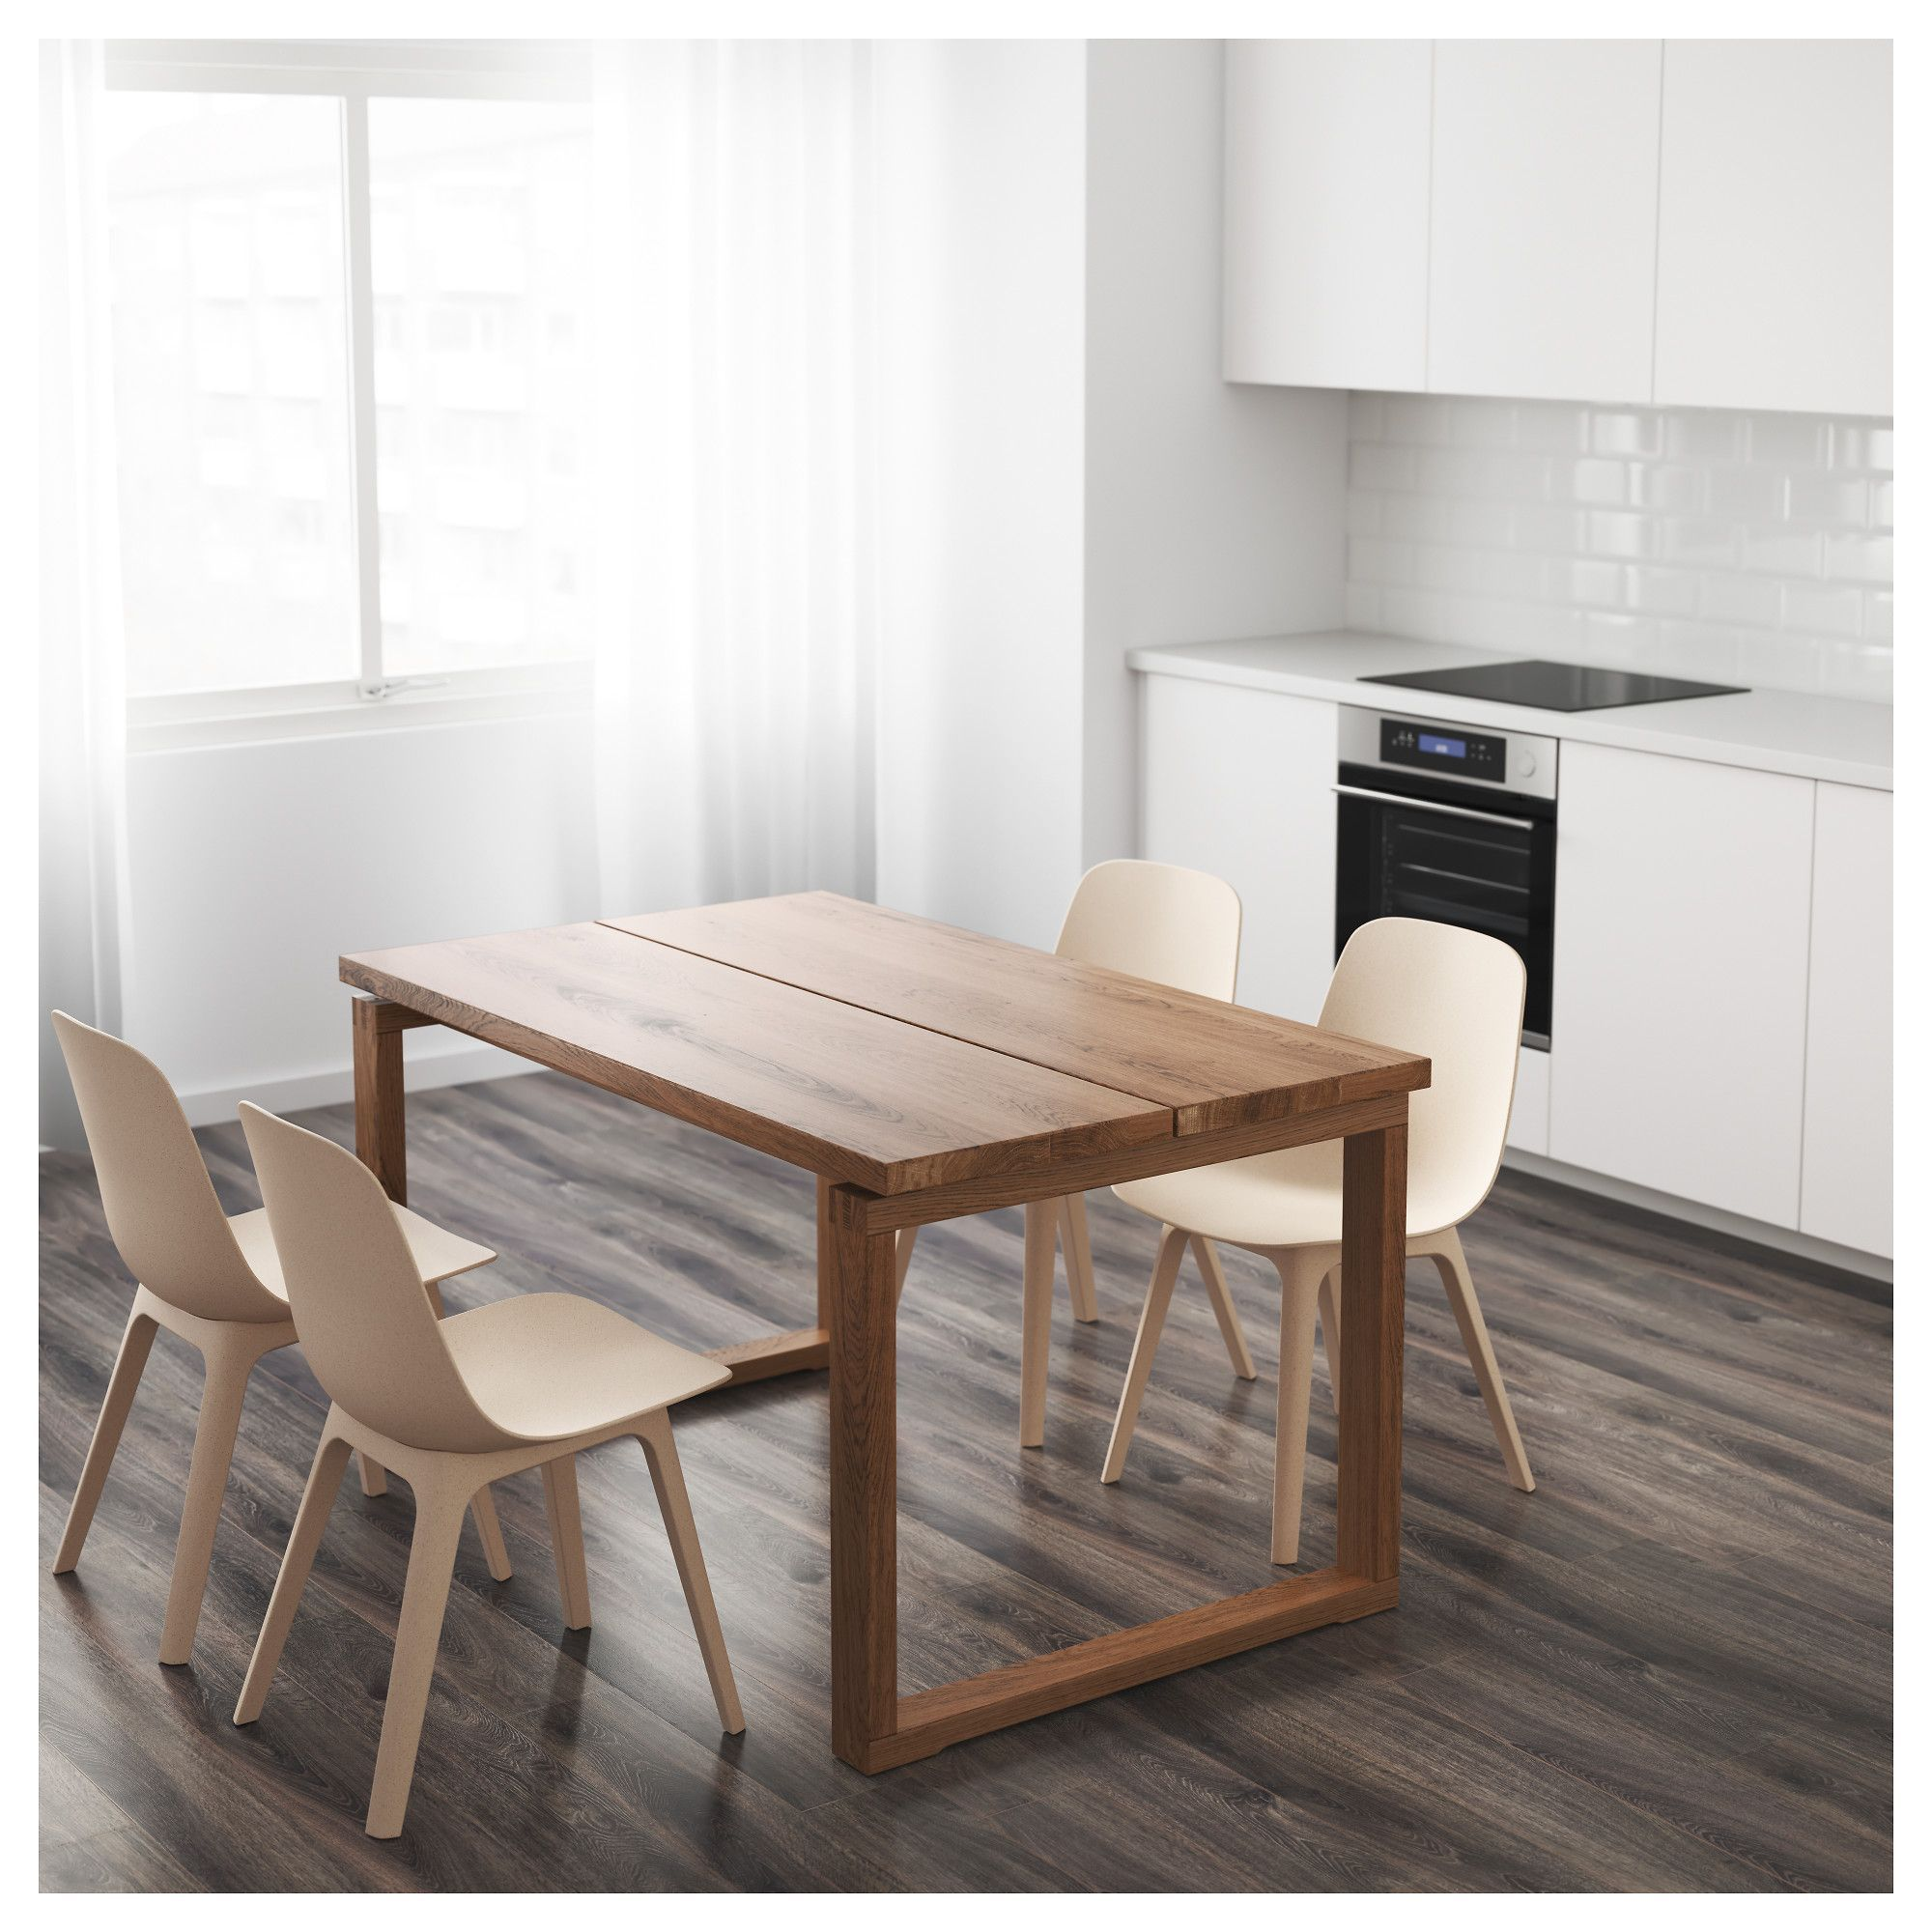 Morbylanga Table Oak Veneer Brown Stained Length 55 1 8 Ikea Interior Design Kitchen Contemporary Ikea Table Floating Table [ 2000 x 2000 Pixel ]